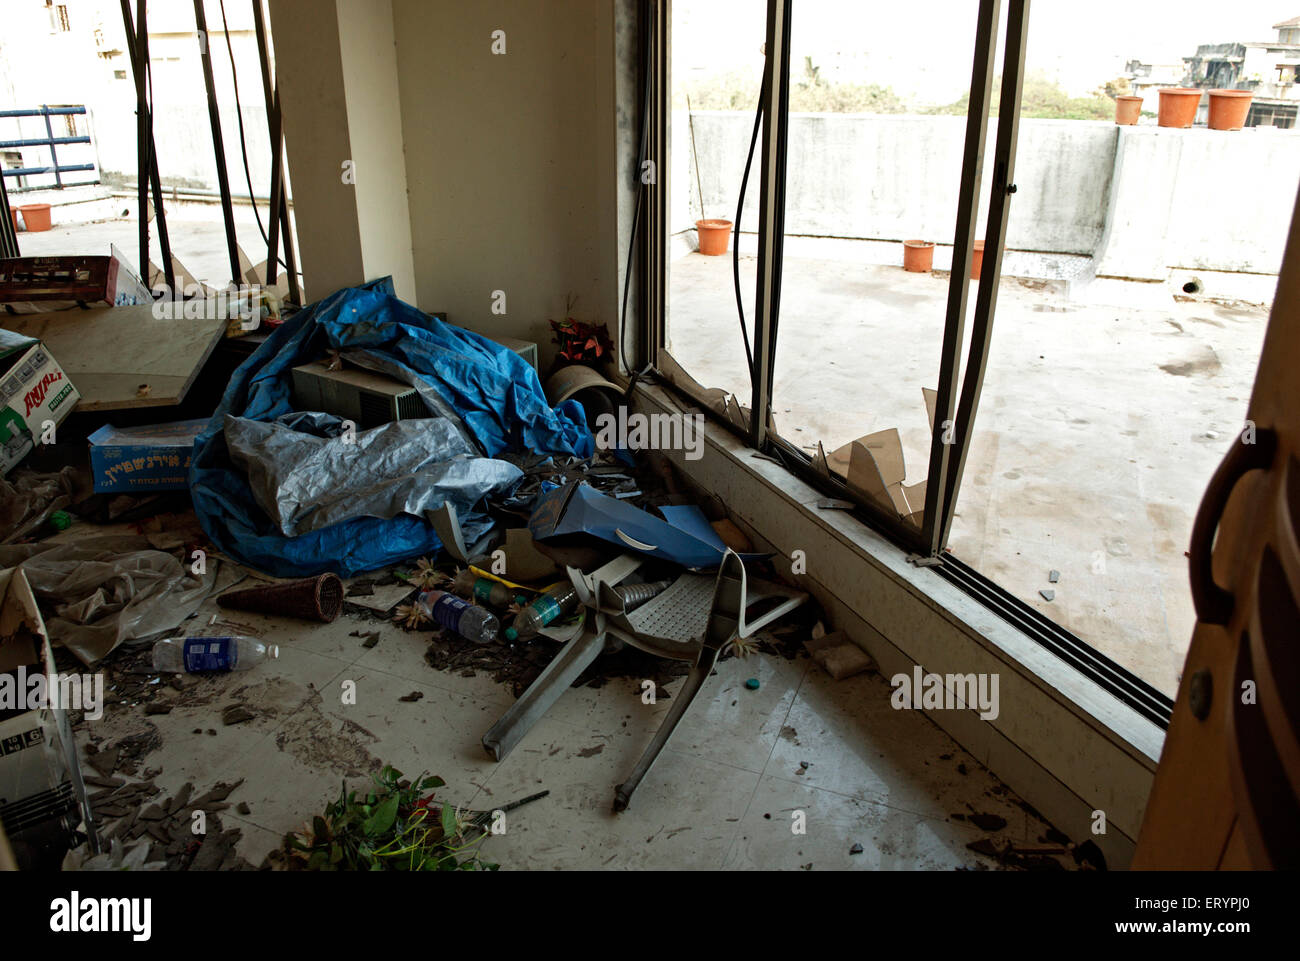 Broken window on terrace of nariman house jewish community centre by deccan mujahedeen terrorists attack in Bombay - Stock Image